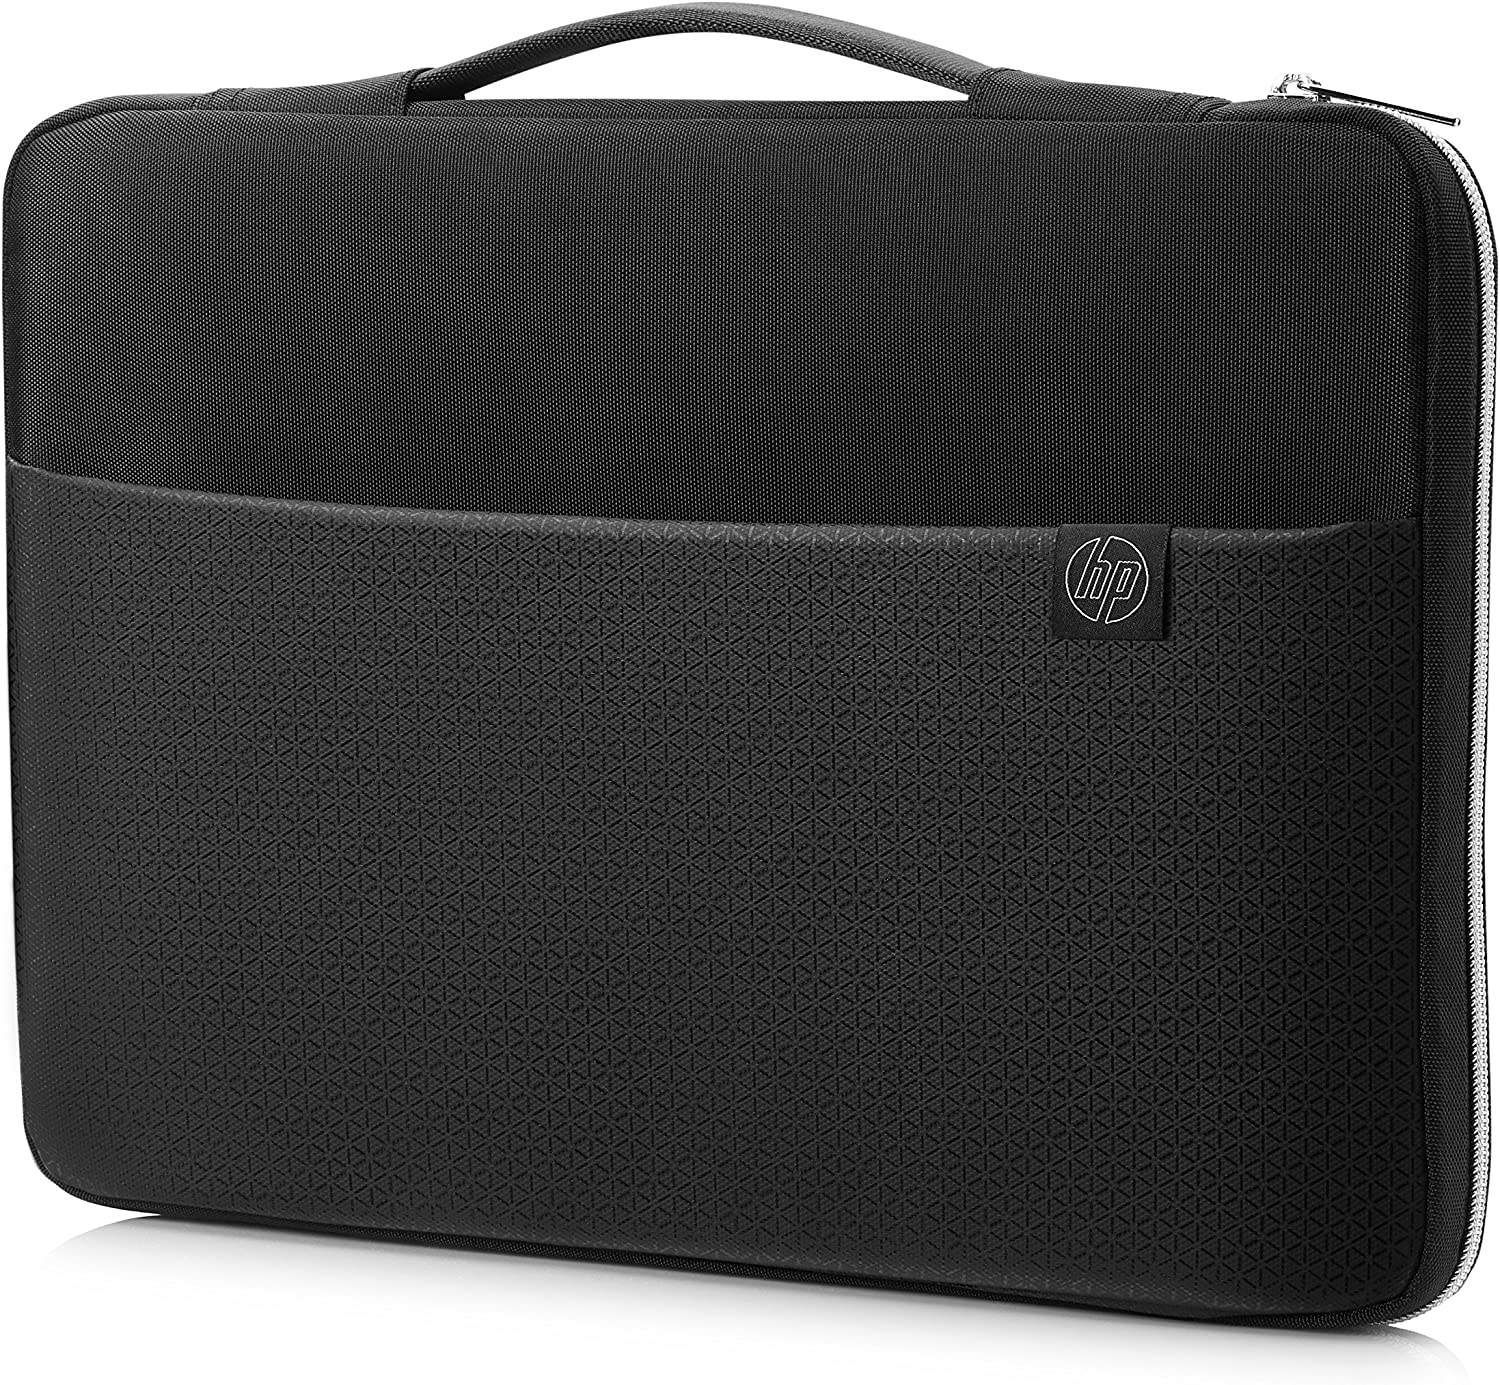 HP Duotone 17.3 Inch (43.9 cm) Black & Silver Carry Sleeve for Laptop/Chromebook/Mac